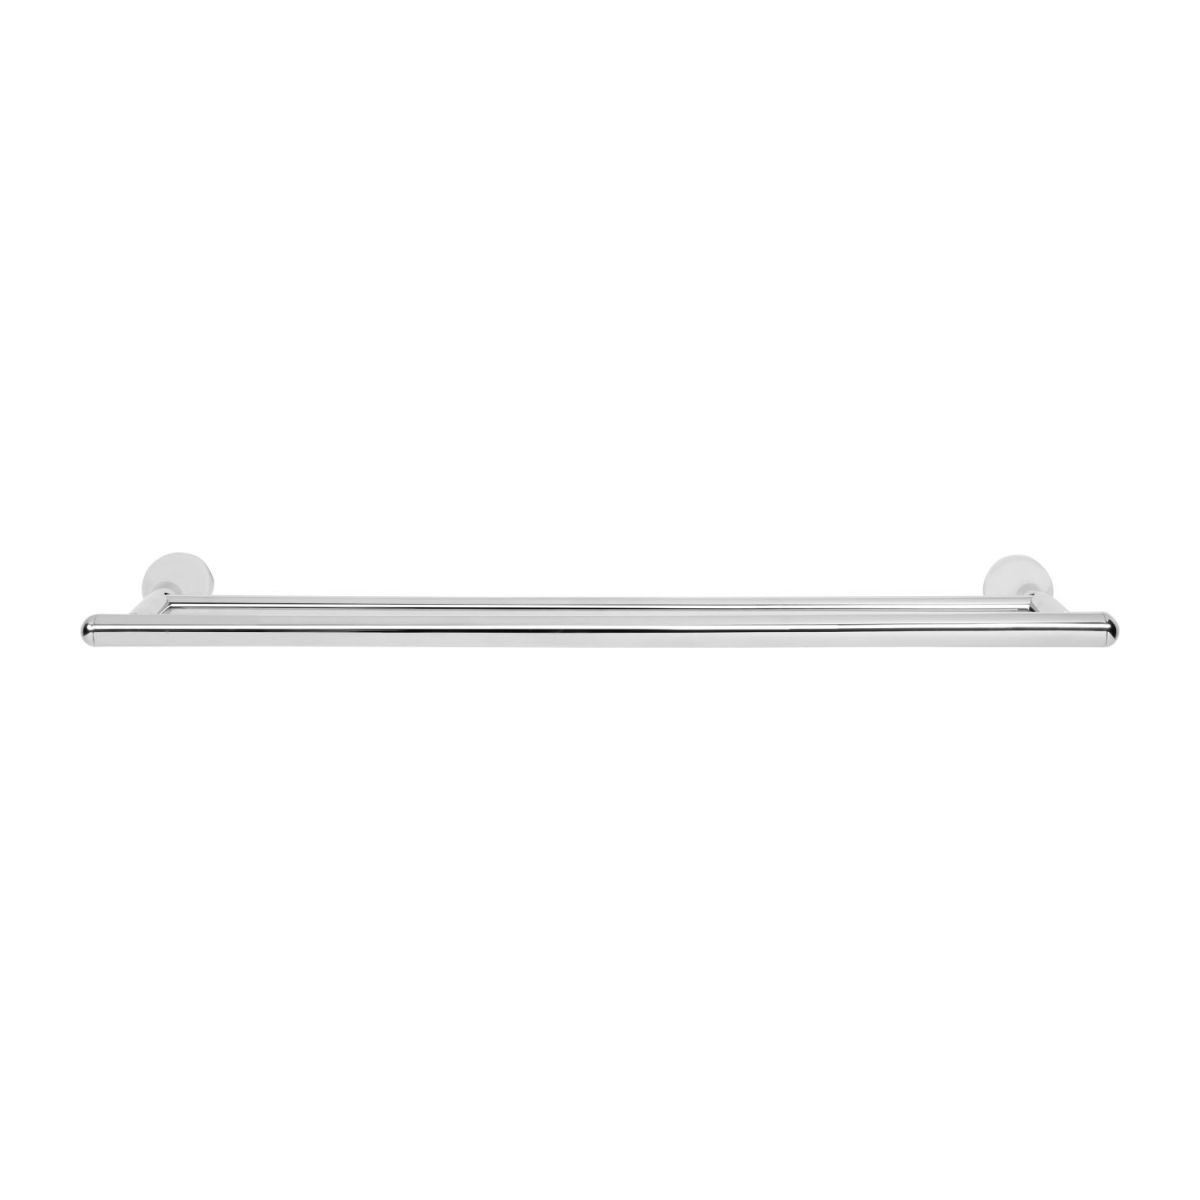 Double towel holder 60cm made in stainless steel n°2